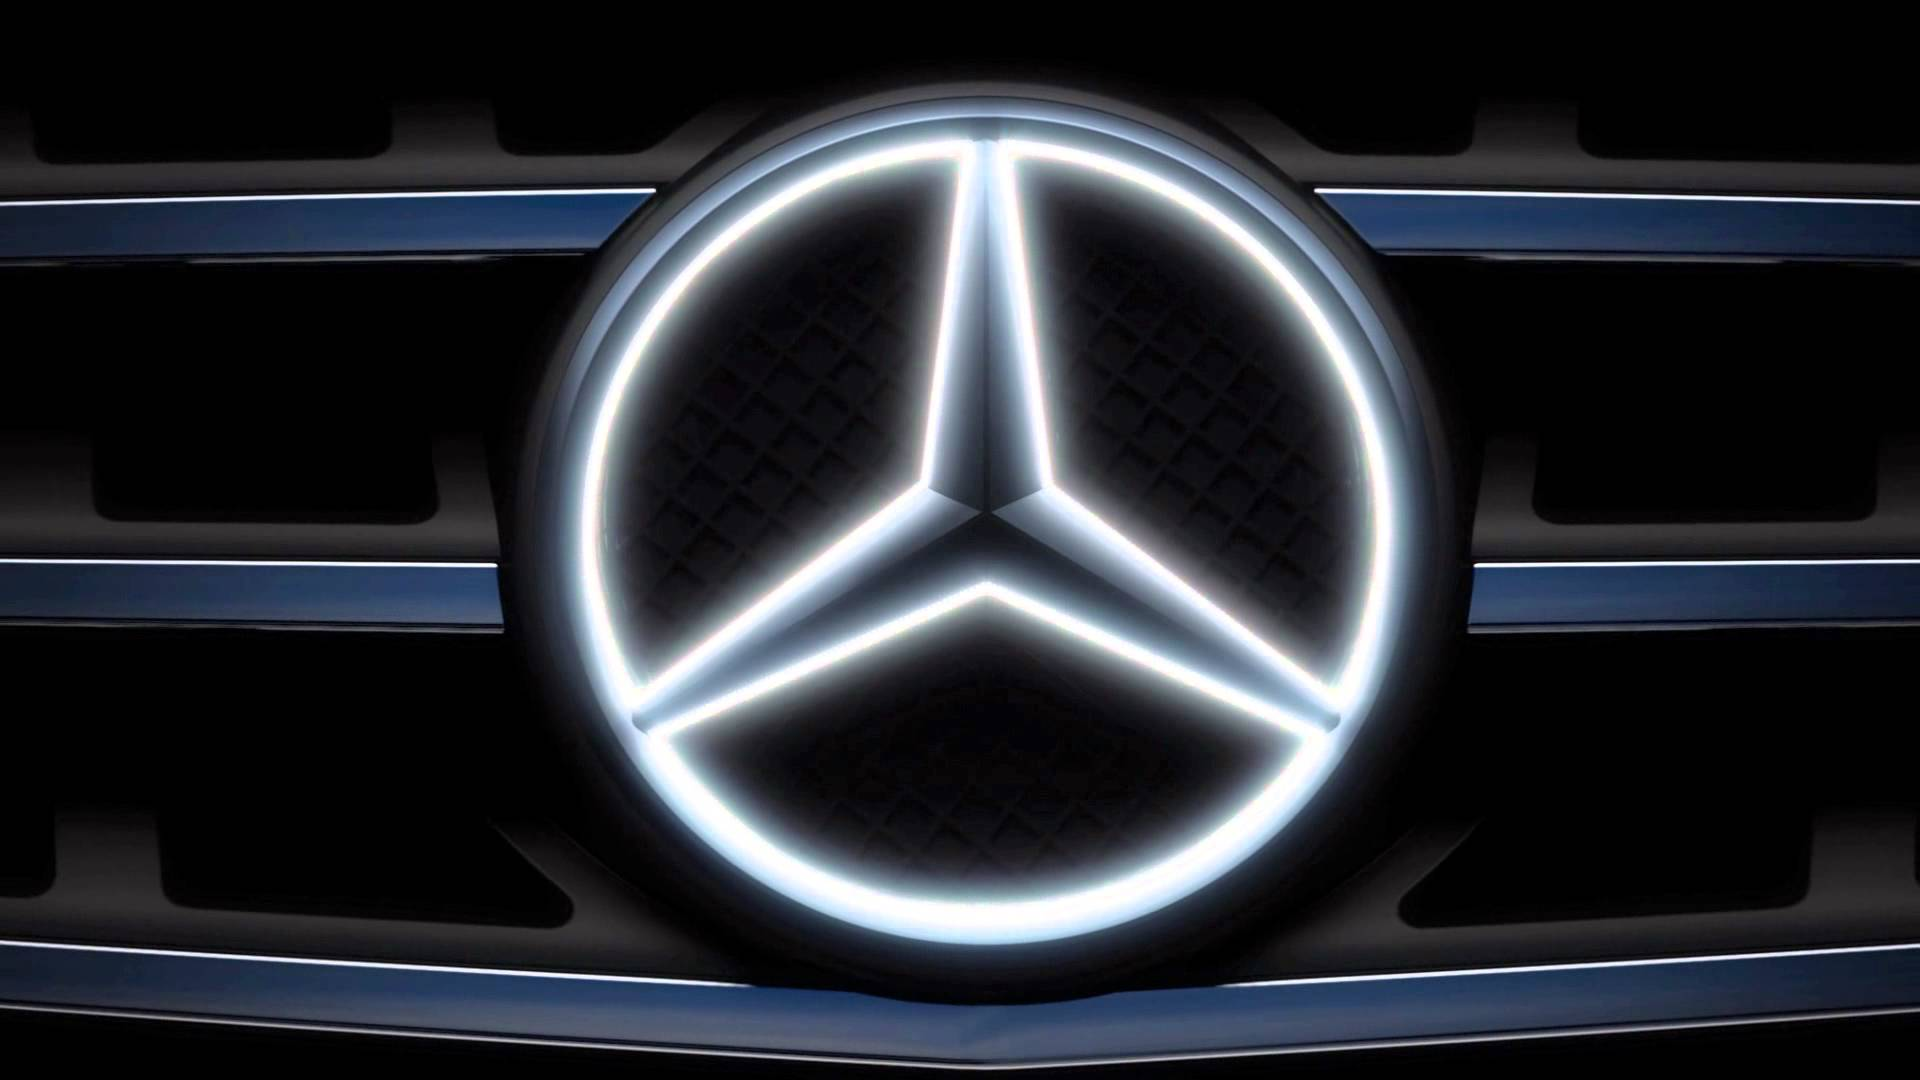 Mercedes benz logo wallpapers wallpaper cave mercedes benz logo wallpapers wallpapersafari voltagebd Image collections